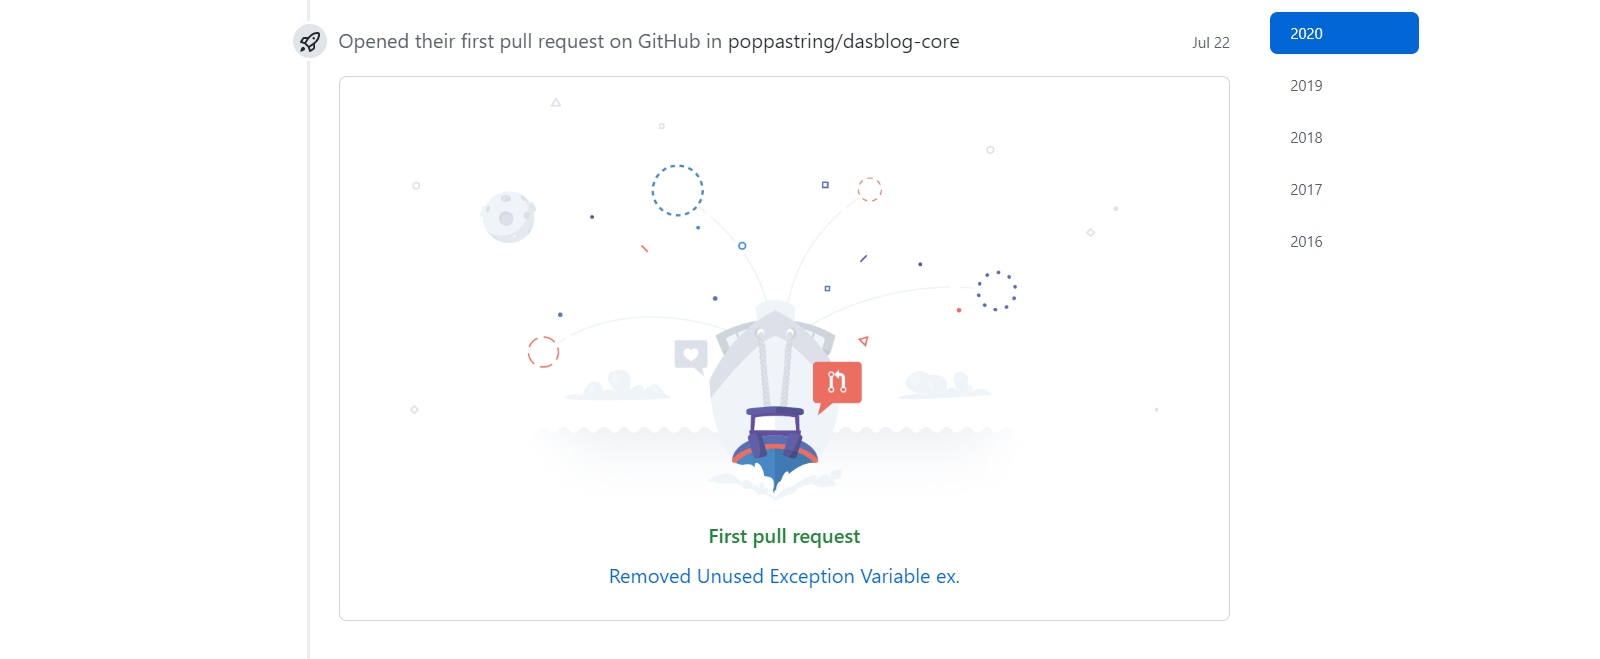 Opened their first pull request on Github